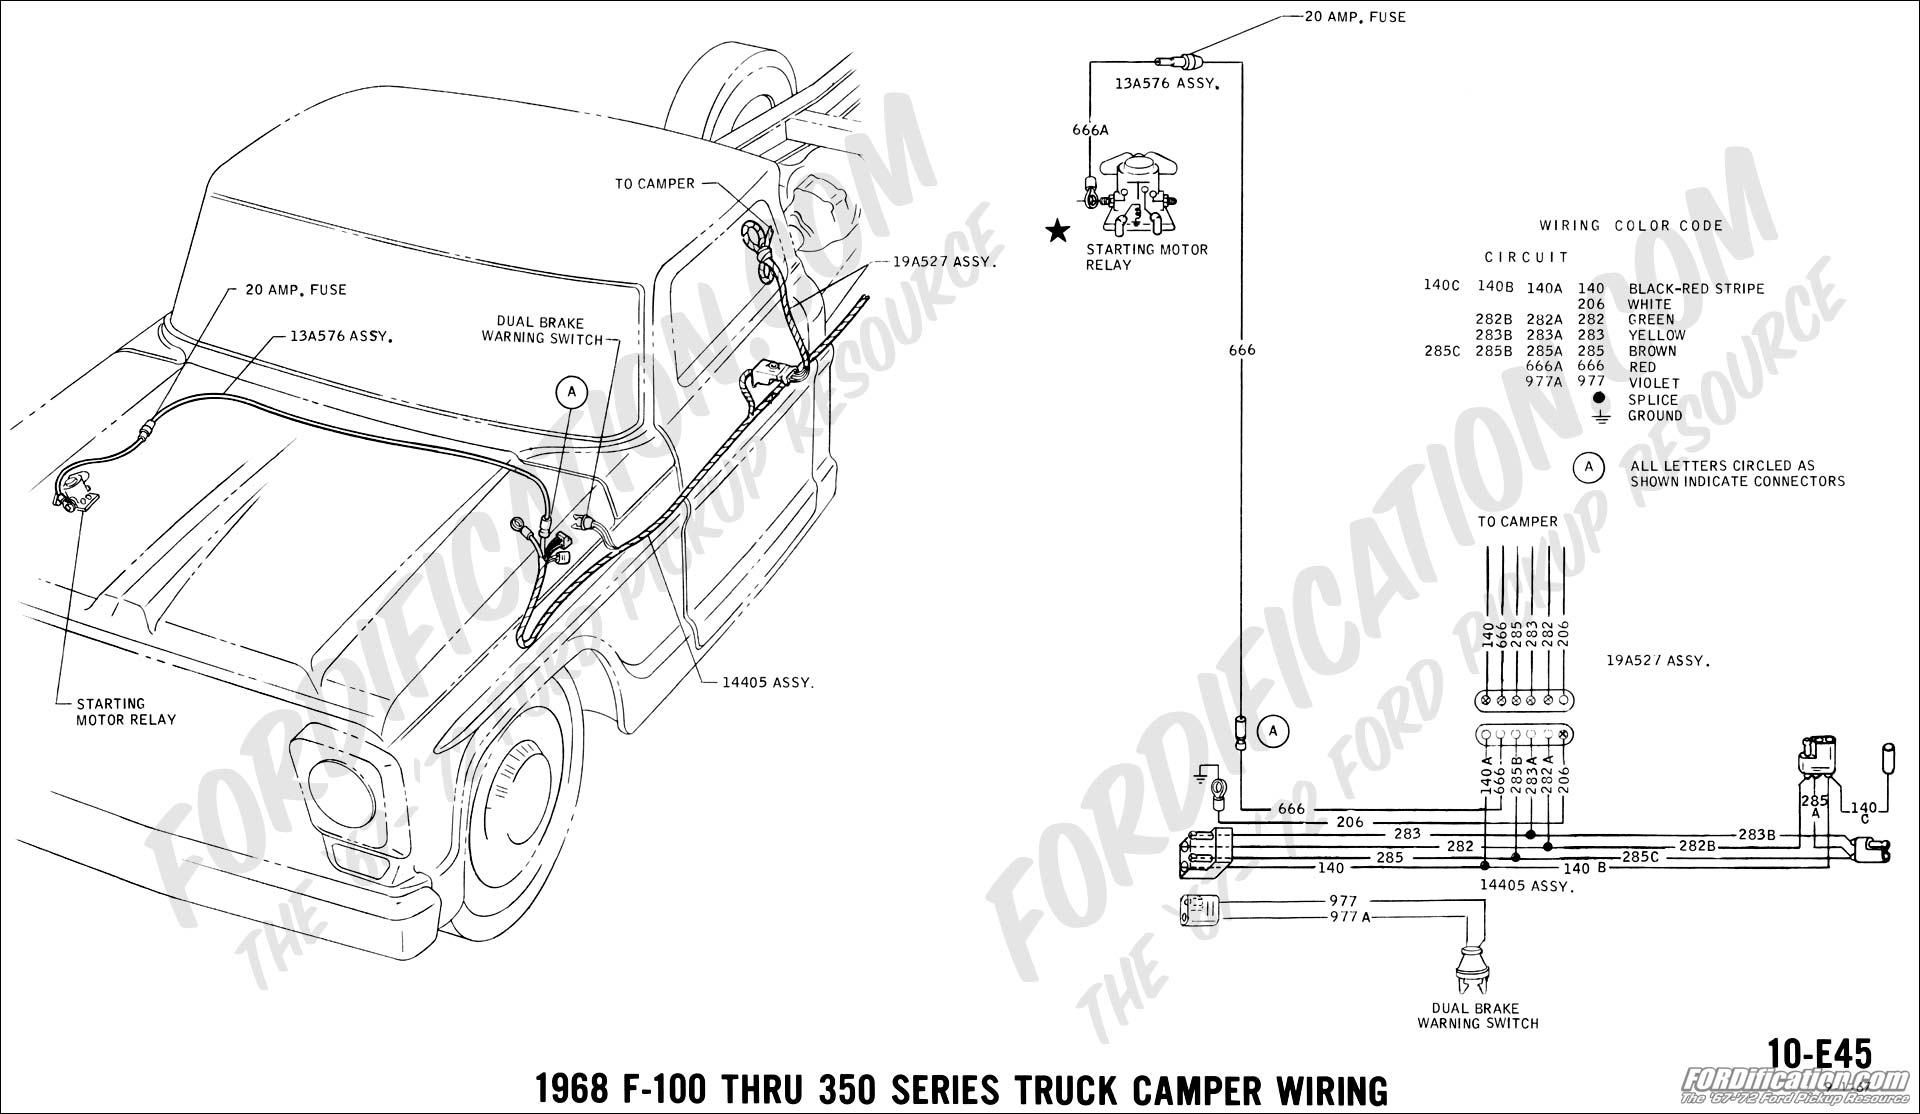 Ford Truck Technical Drawings And Schematics Section H Wiring Home Red Black White 1968 F 100 Thru 350 Camper